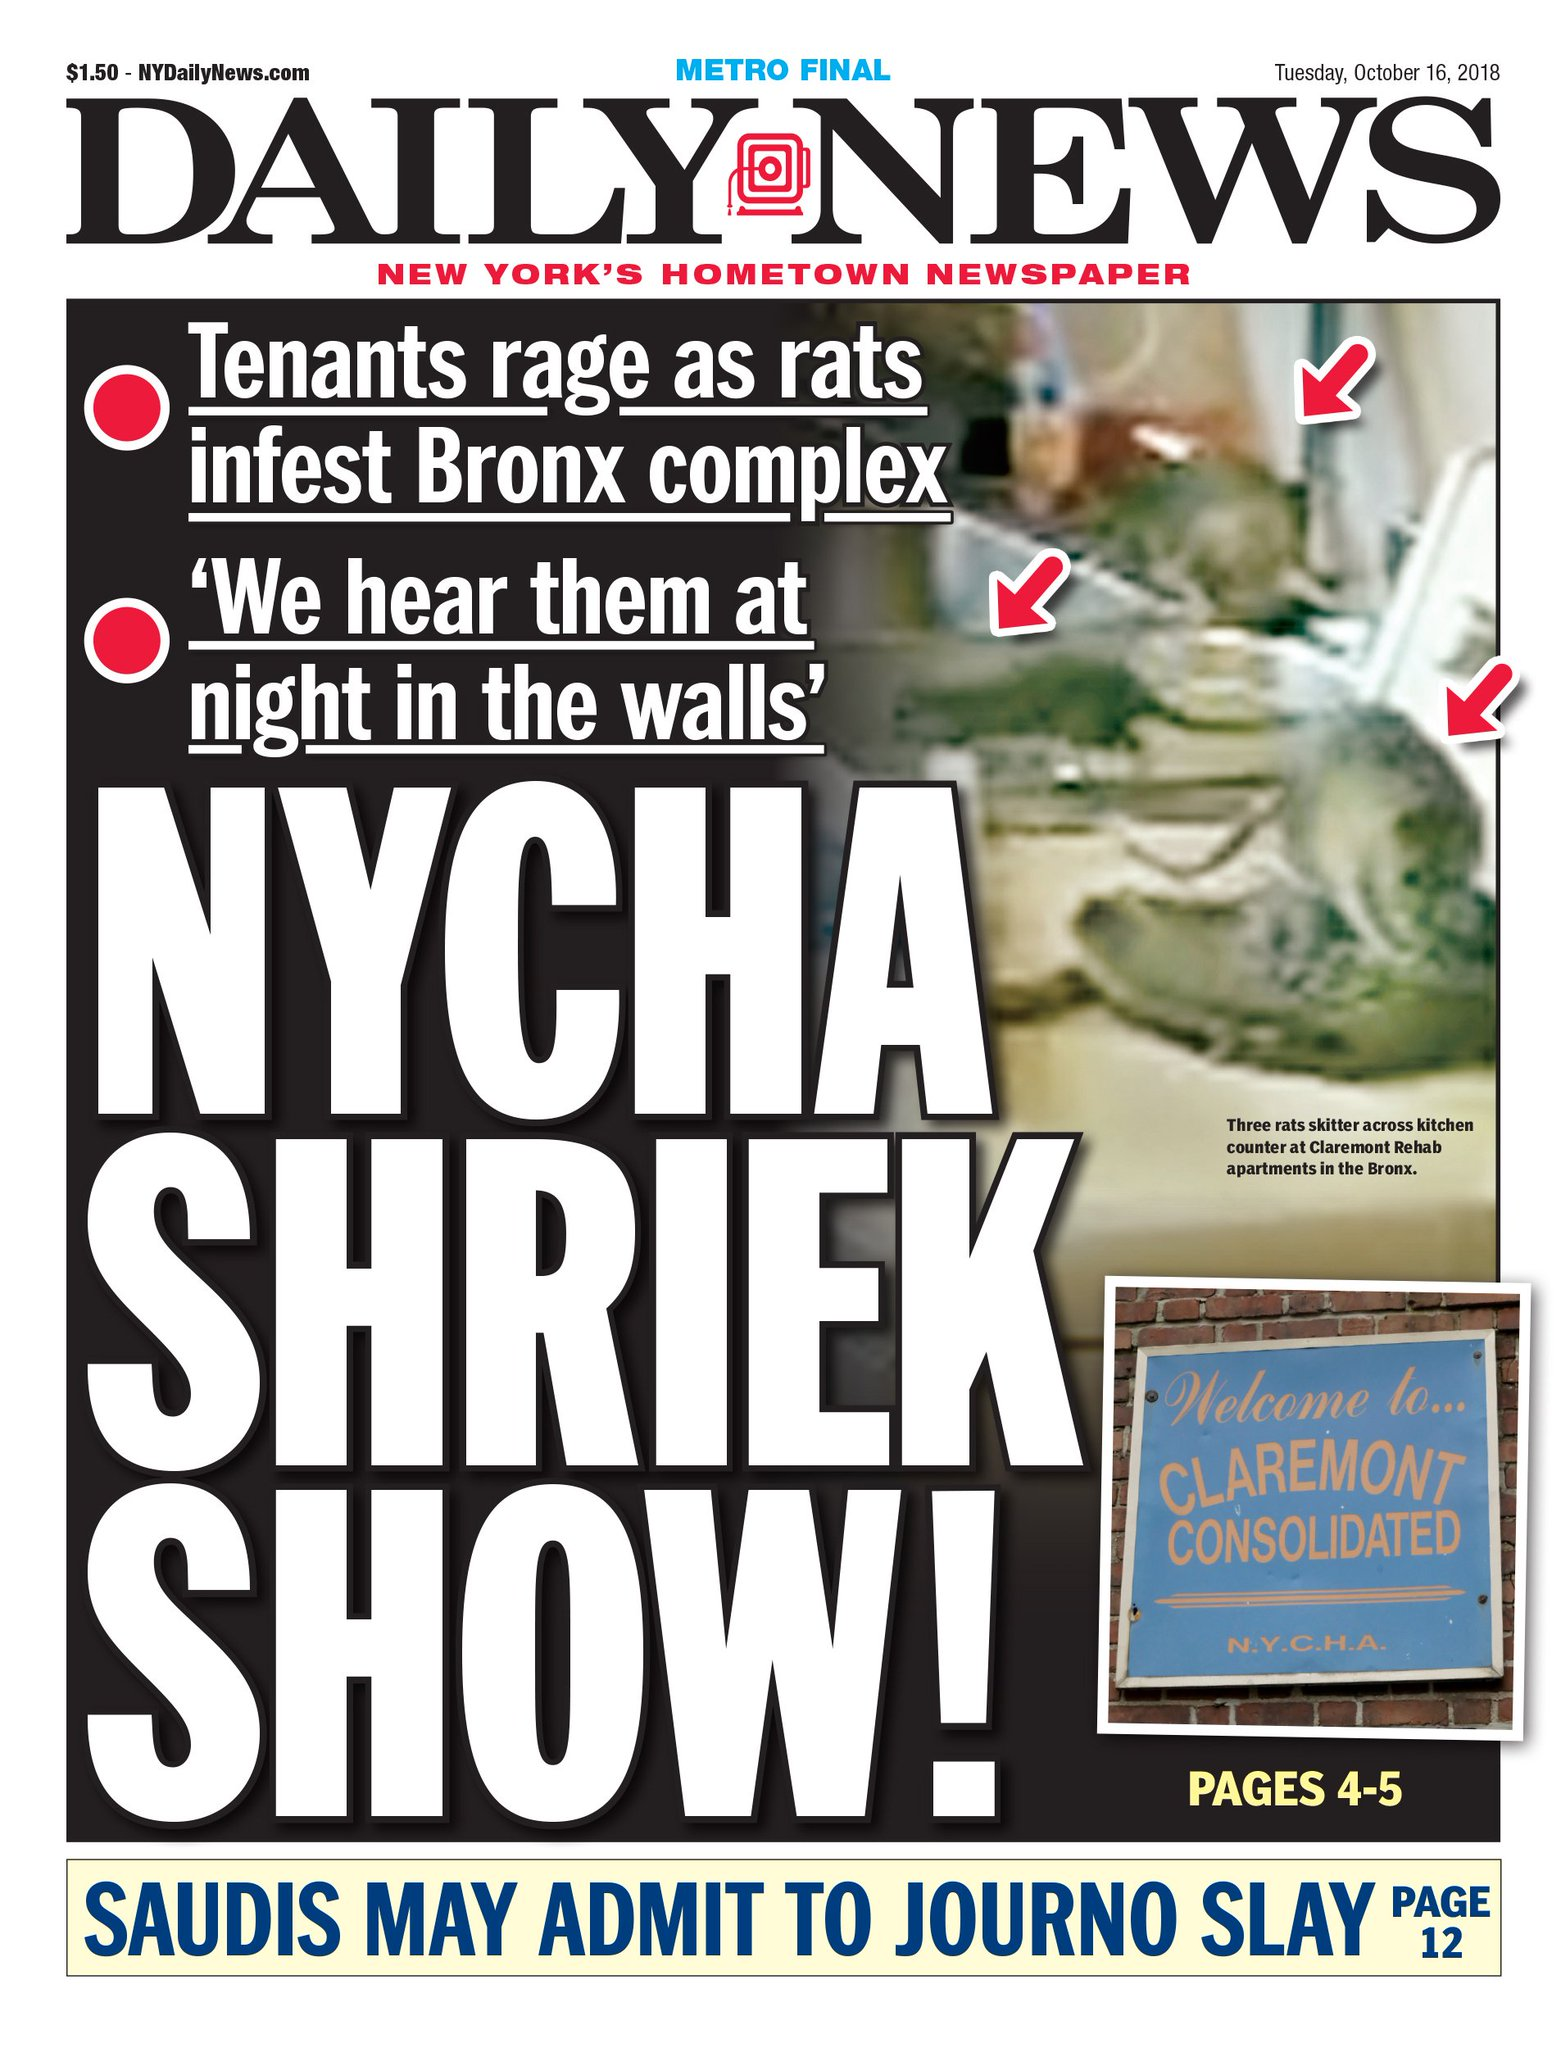 Rats invade Bronx housing complex. https://t.co/cK0T40ofLZ  An early look at Tuesday's front page. https://t.co/c36lht2hrX